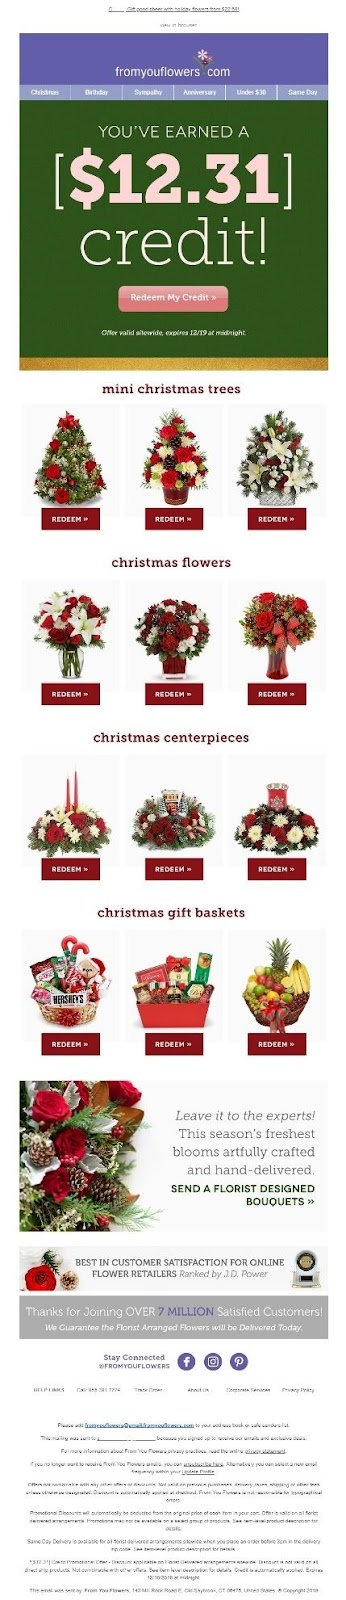 fromyouflowers.com holiday email campaign